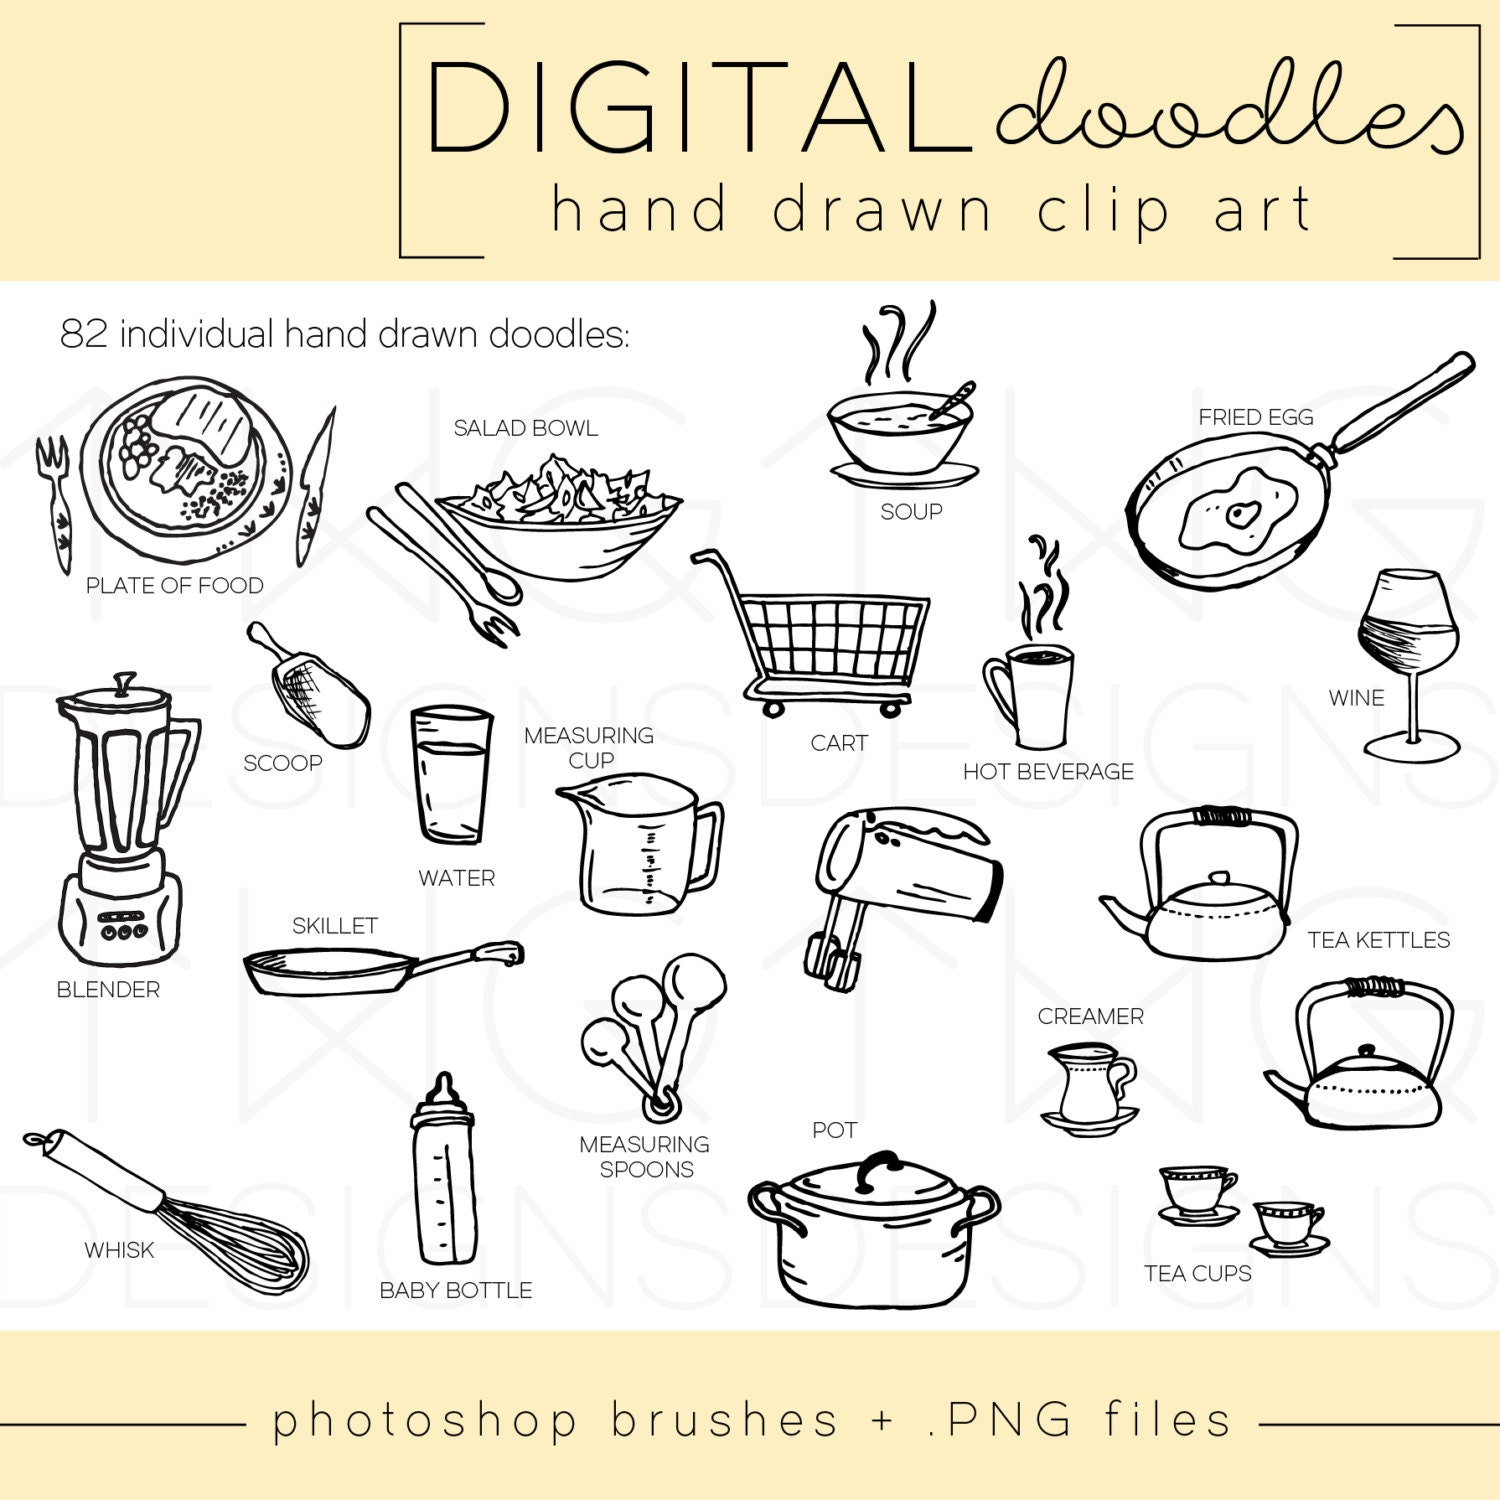 MEGA-Pack / Hand Drawn Clip Art / PNG Files / Photoshop